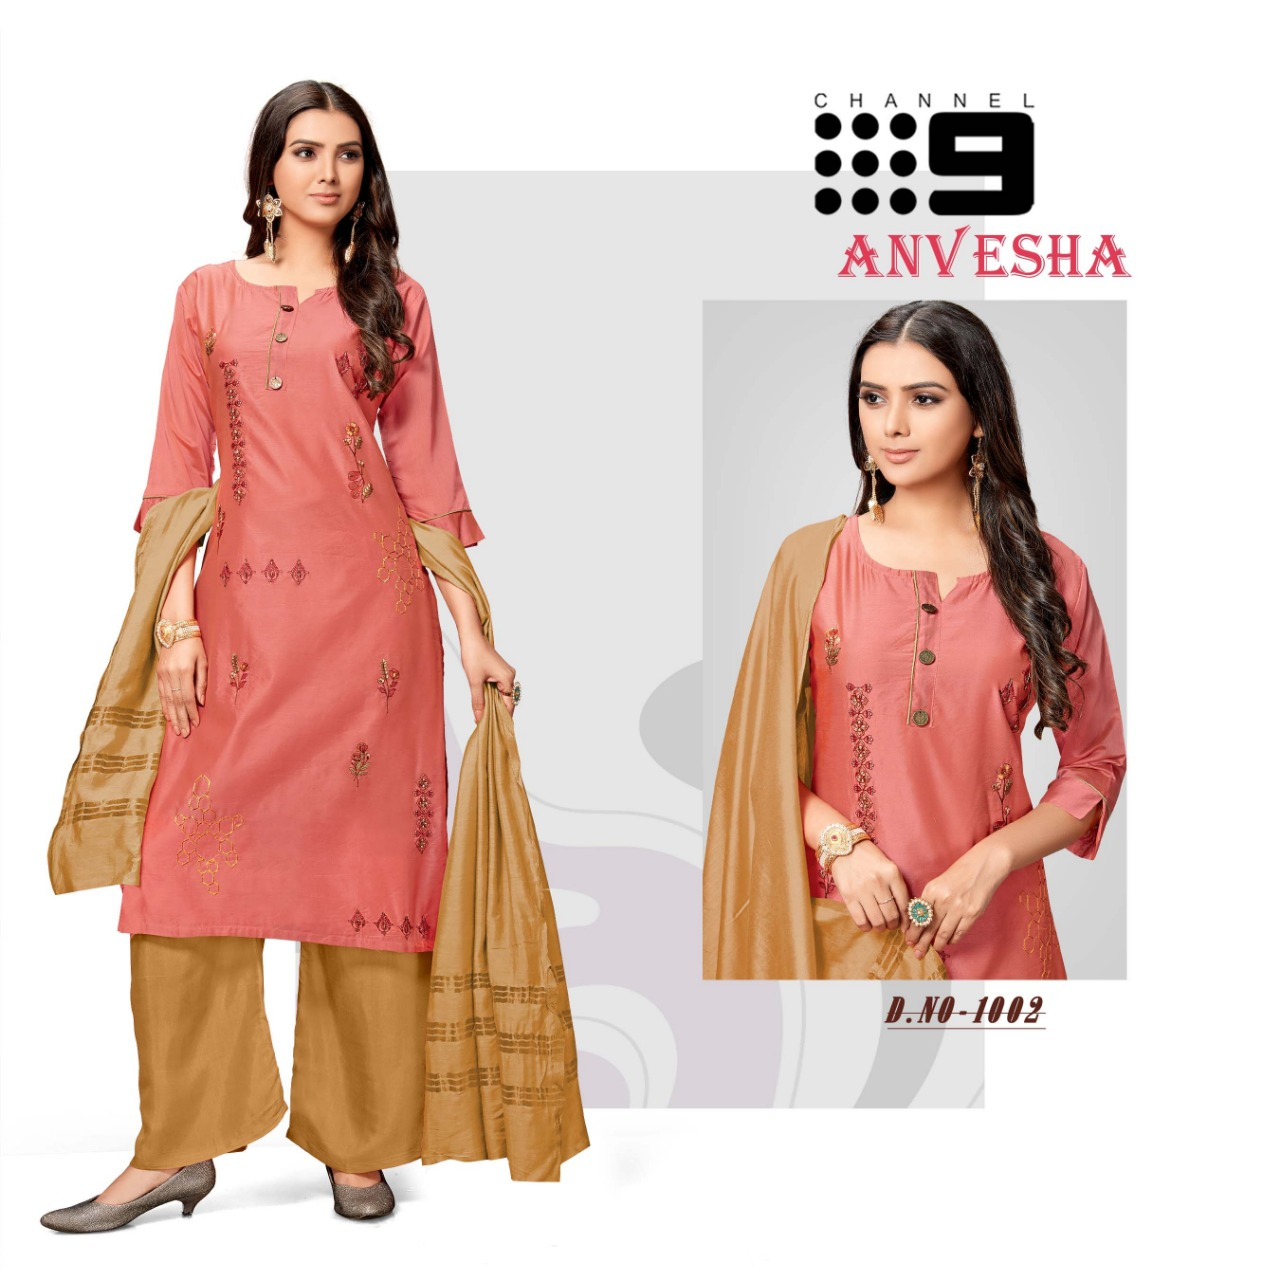 Channel 9 Anvesha Designer Silk Top With Exclusive Viscose Dupatta And Bottom Wholesale